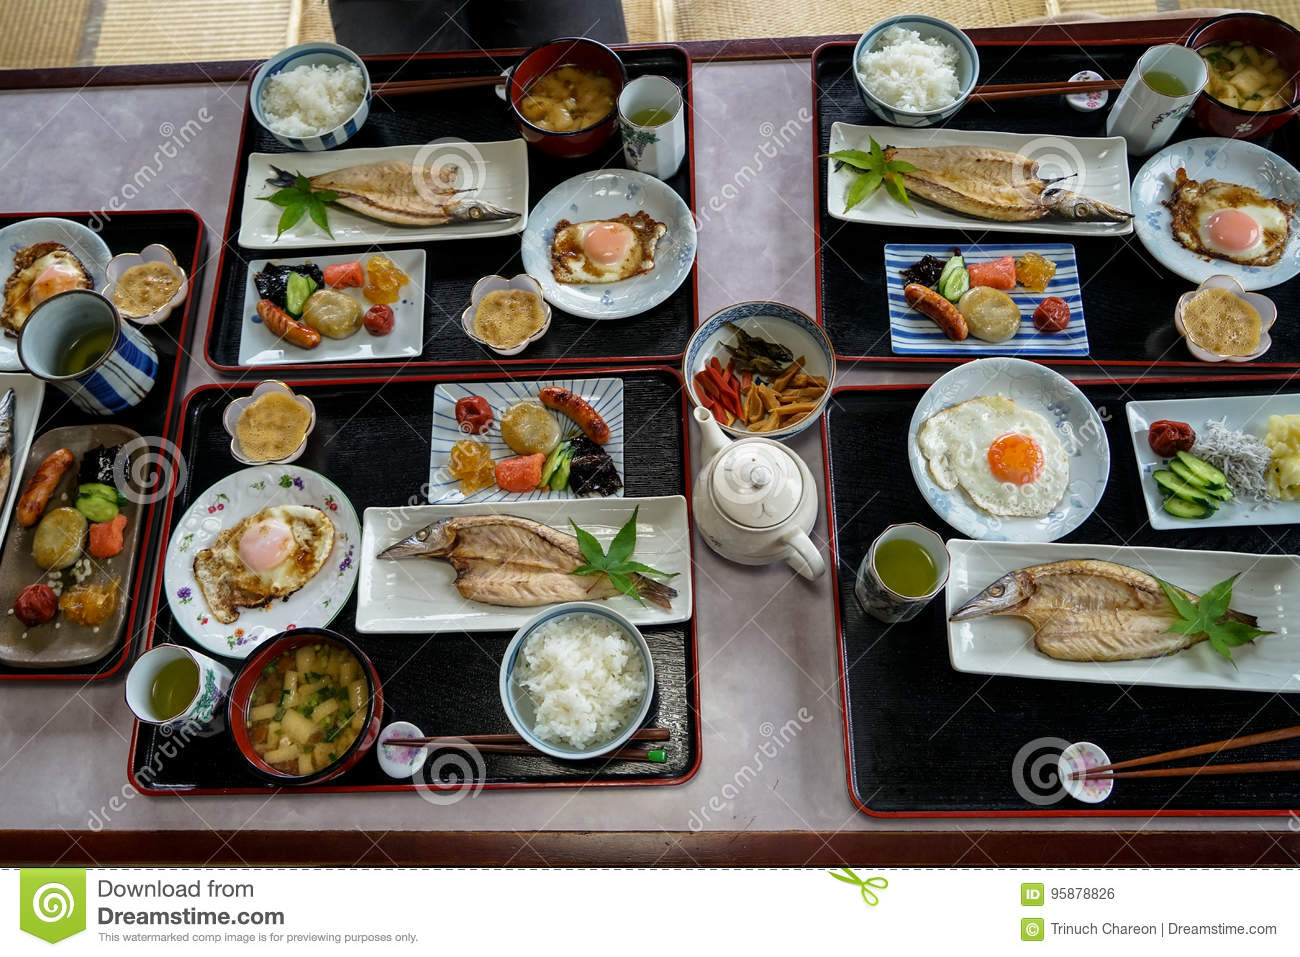 Japanese homestay breakfast tray including cooked white rice, grilled fish, fried egg, tofu soup, sausage, pickle, seaweed, etc.